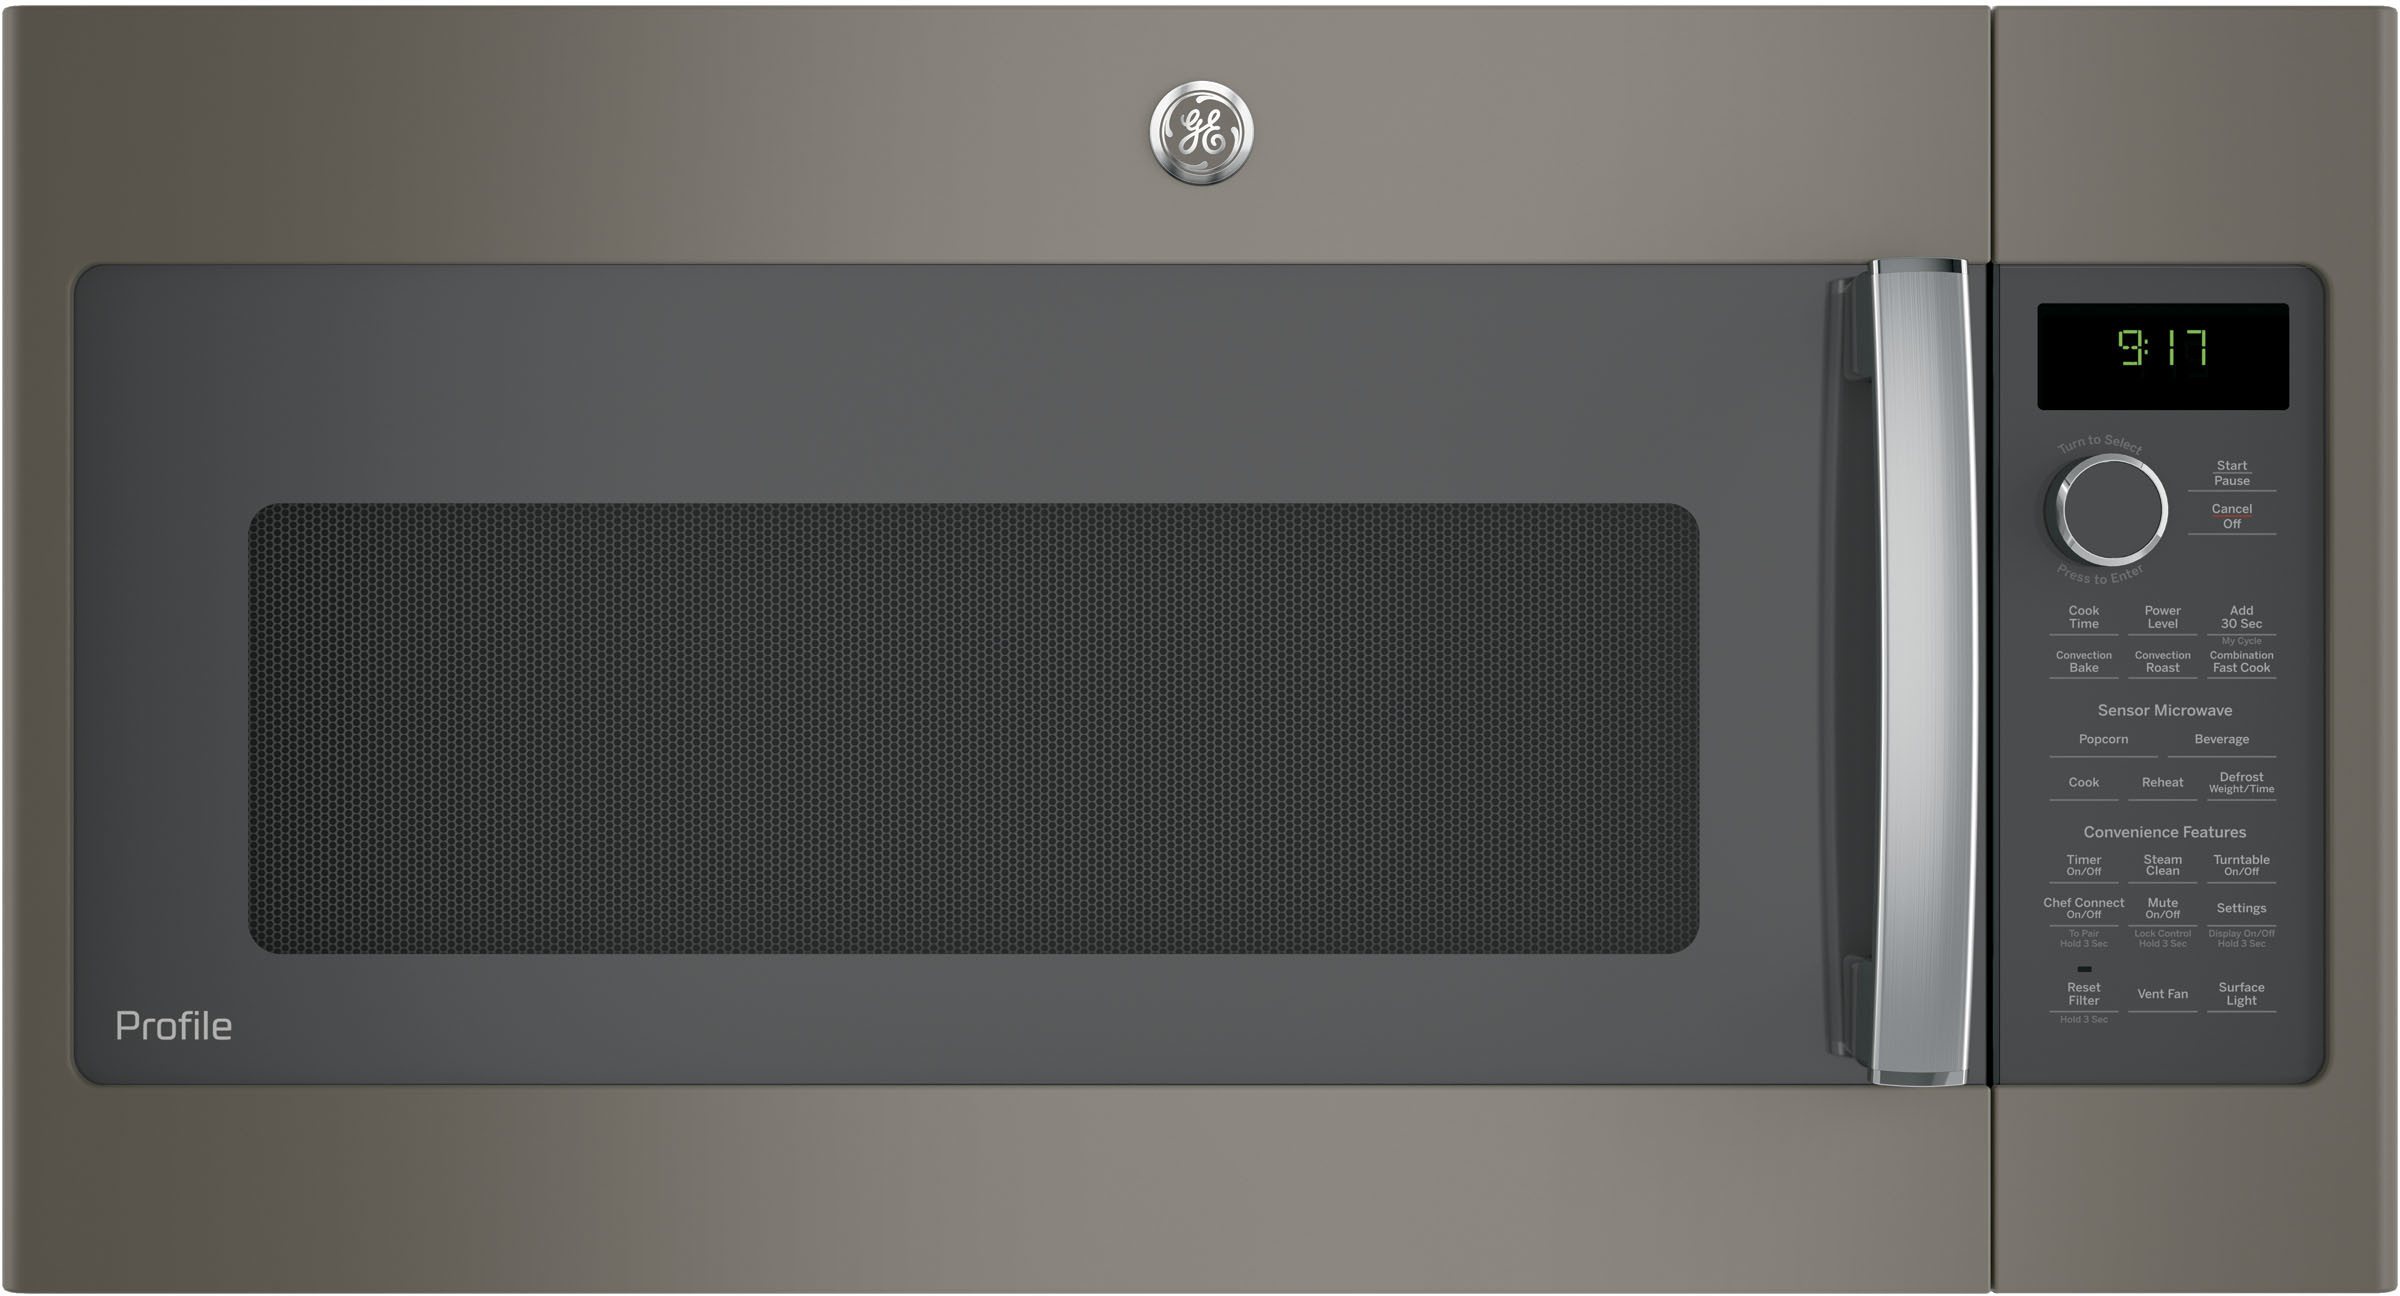 Ge Profile Pvm9179ekes Products In 2019 Convection Cooking